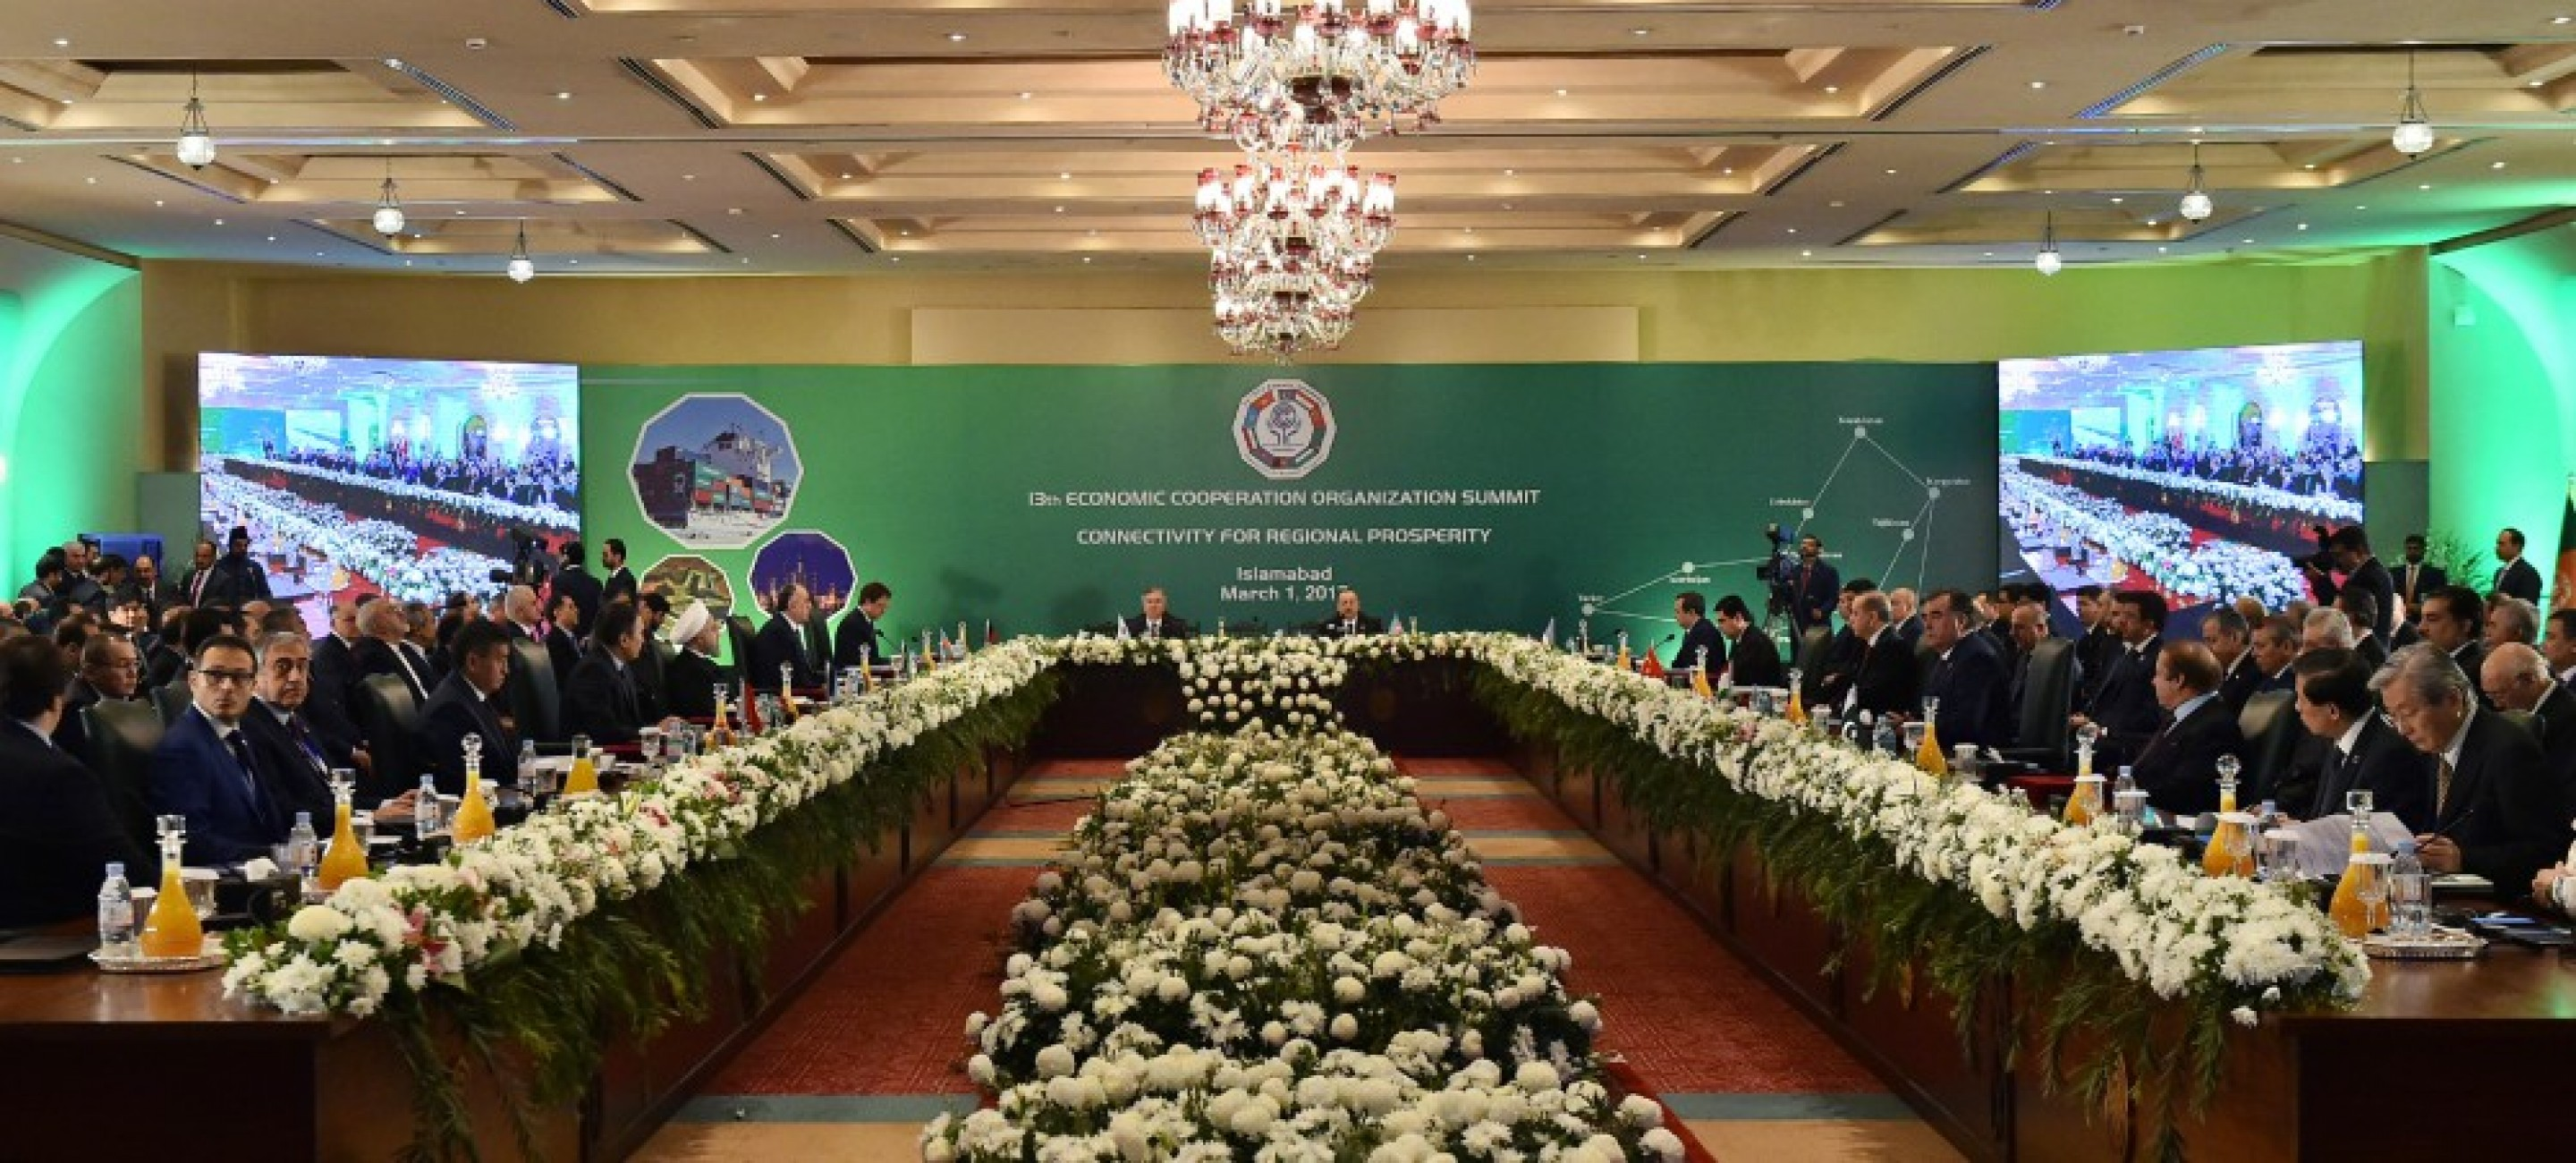 PRESIDENT OF TURKMENISTAN GURBANGULY BERDIMUHAMEDOV PARTICIPATED AT THE SUMMIT OF THE ECO IN ISLAMABAD